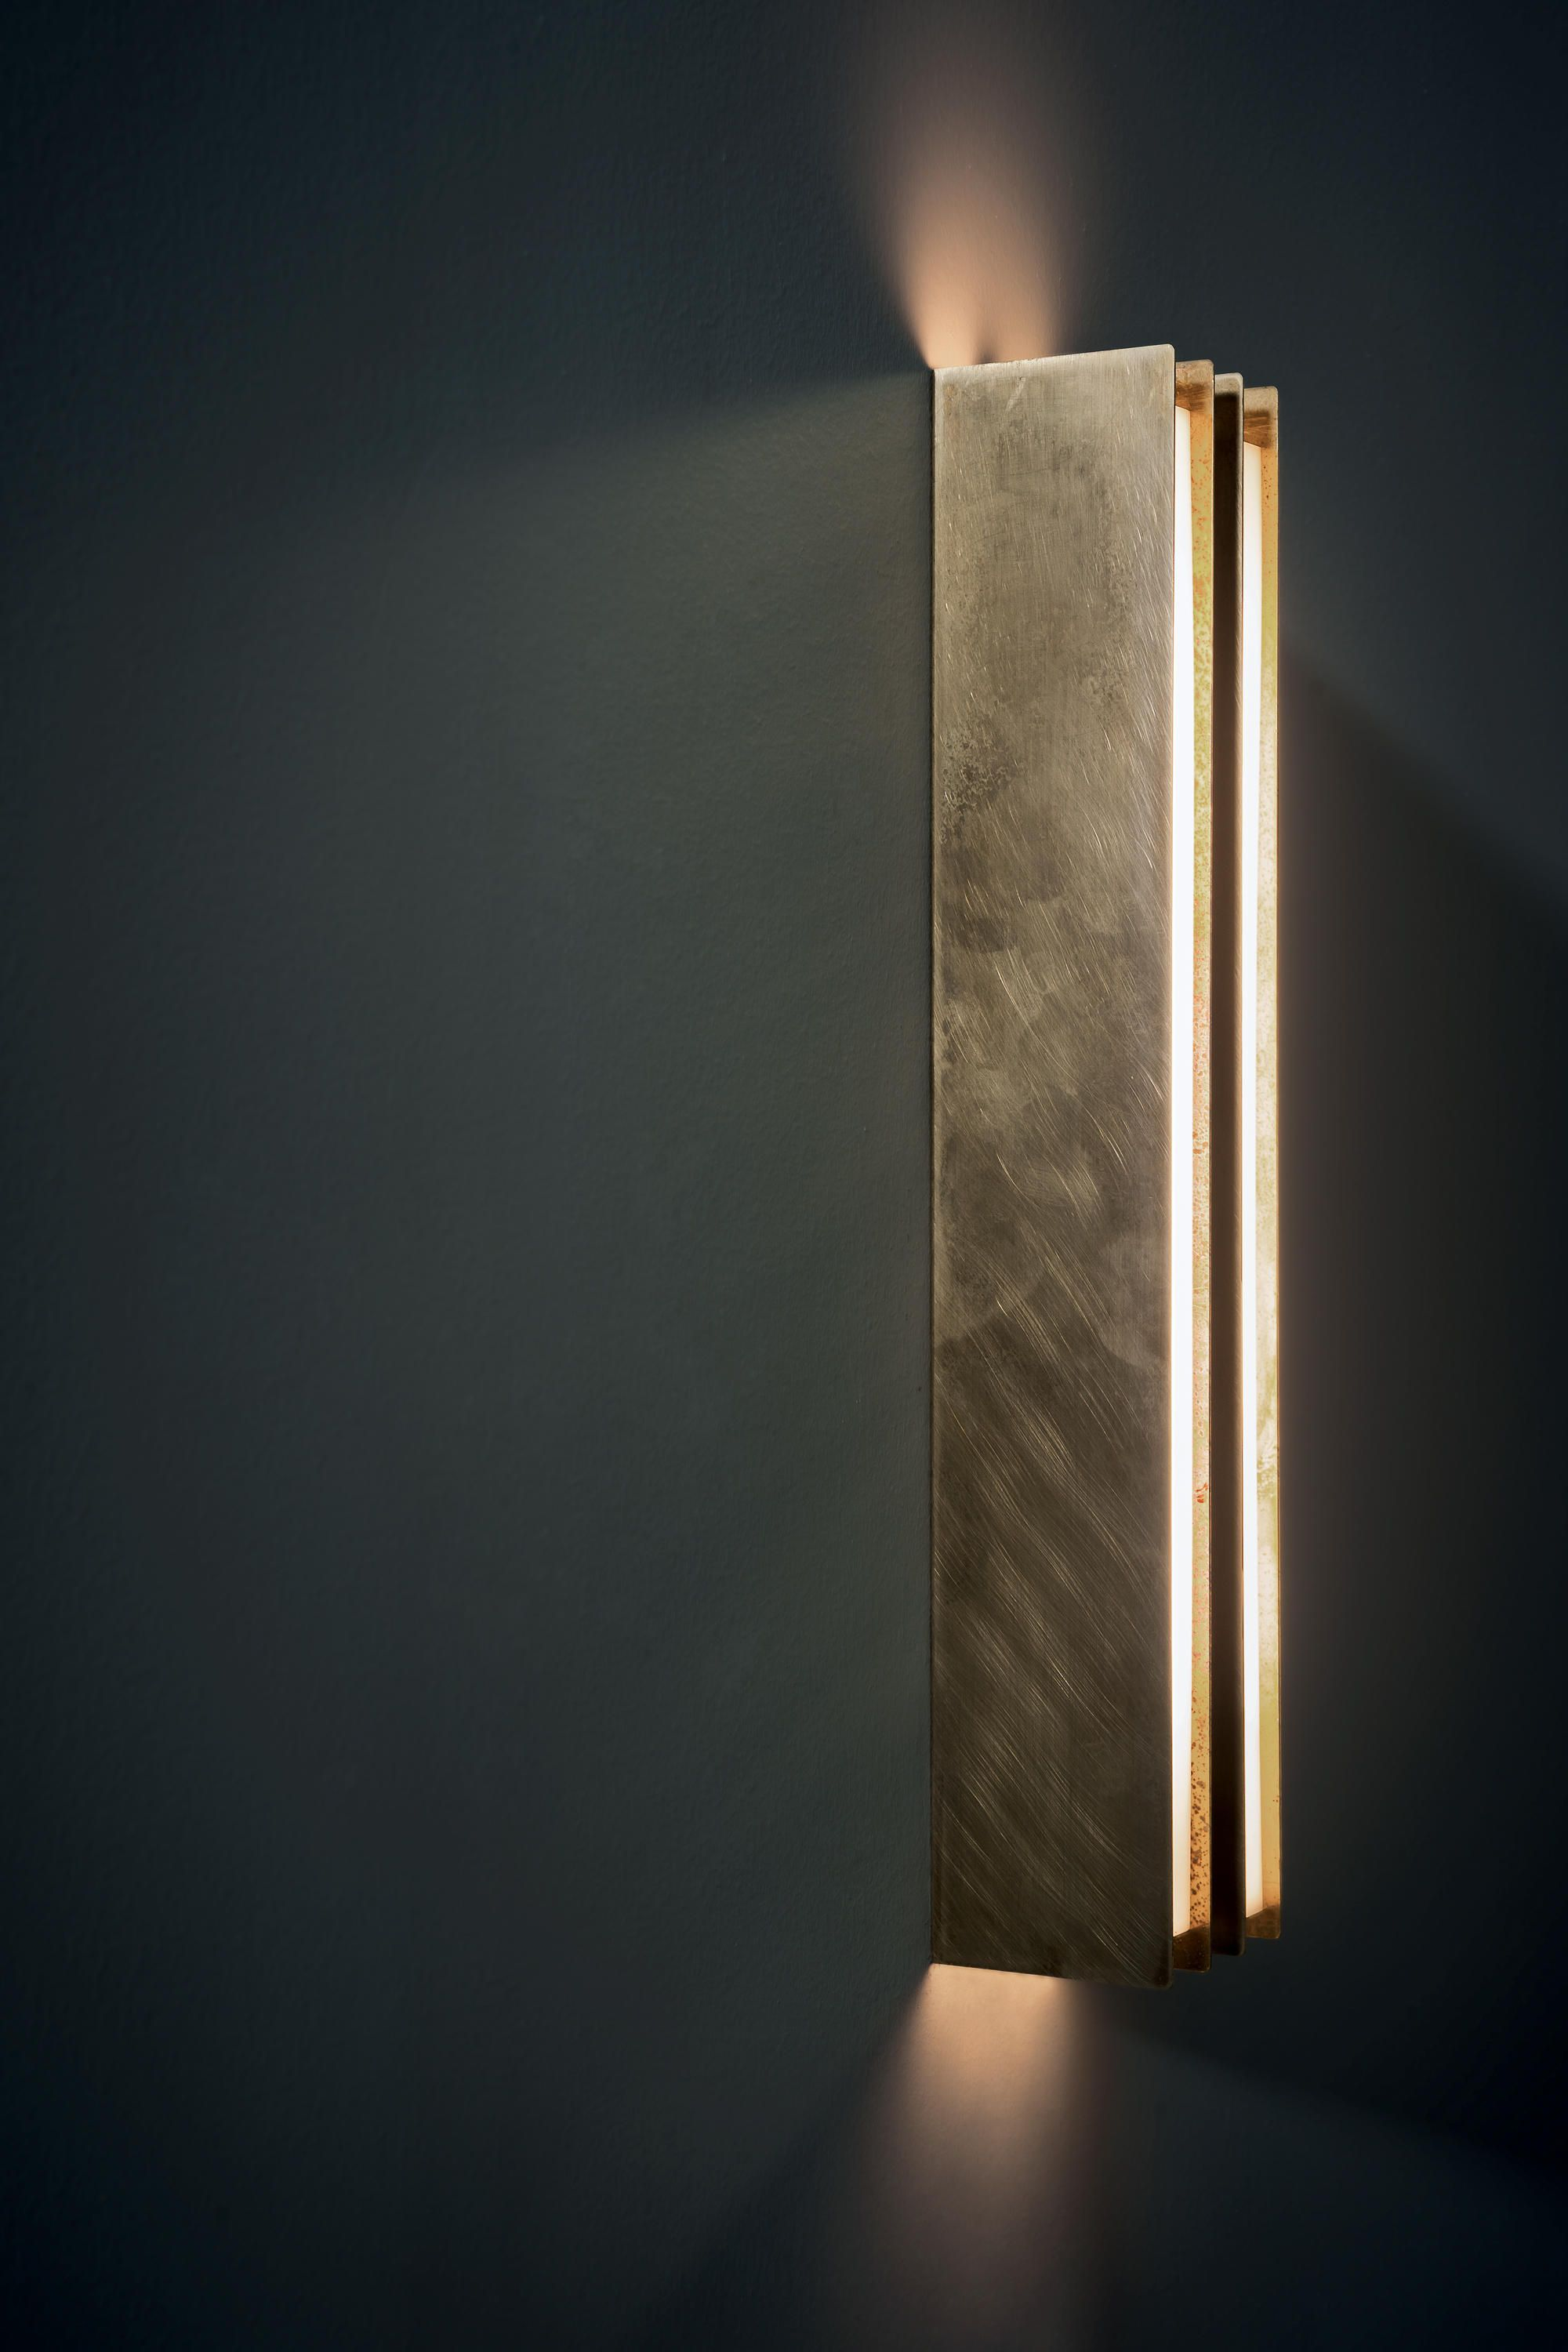 BLADE Wall lamp by Baxter | Wall lamp, Contemporary wall